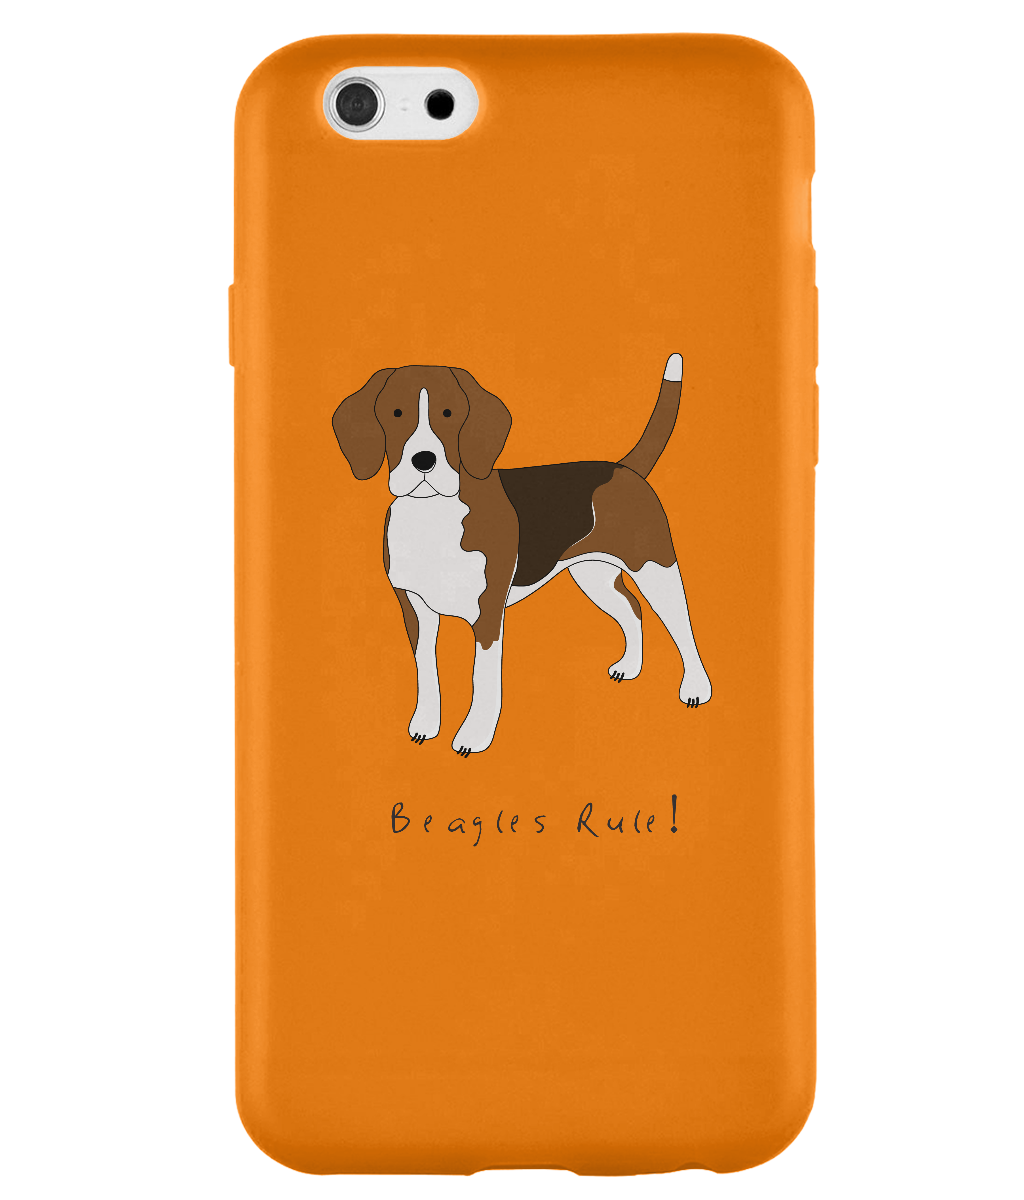 iPhone 6s Full Wrap Case - Beagles Rule! - Dogs Rule!